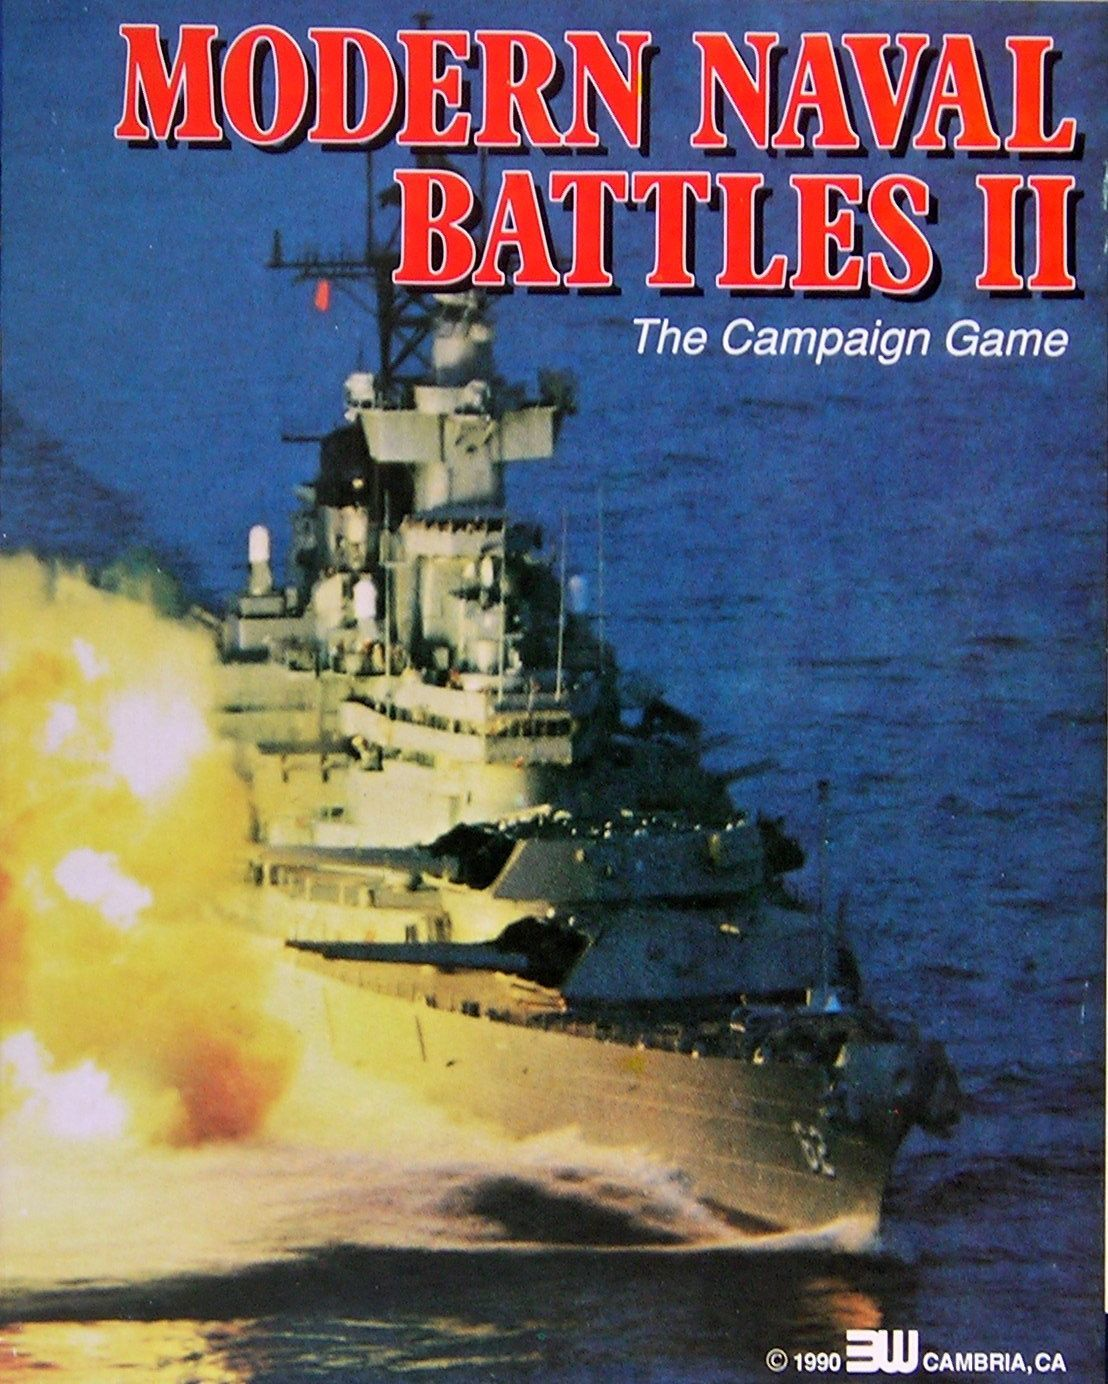 Modern Naval Battles II: The Campaign Game